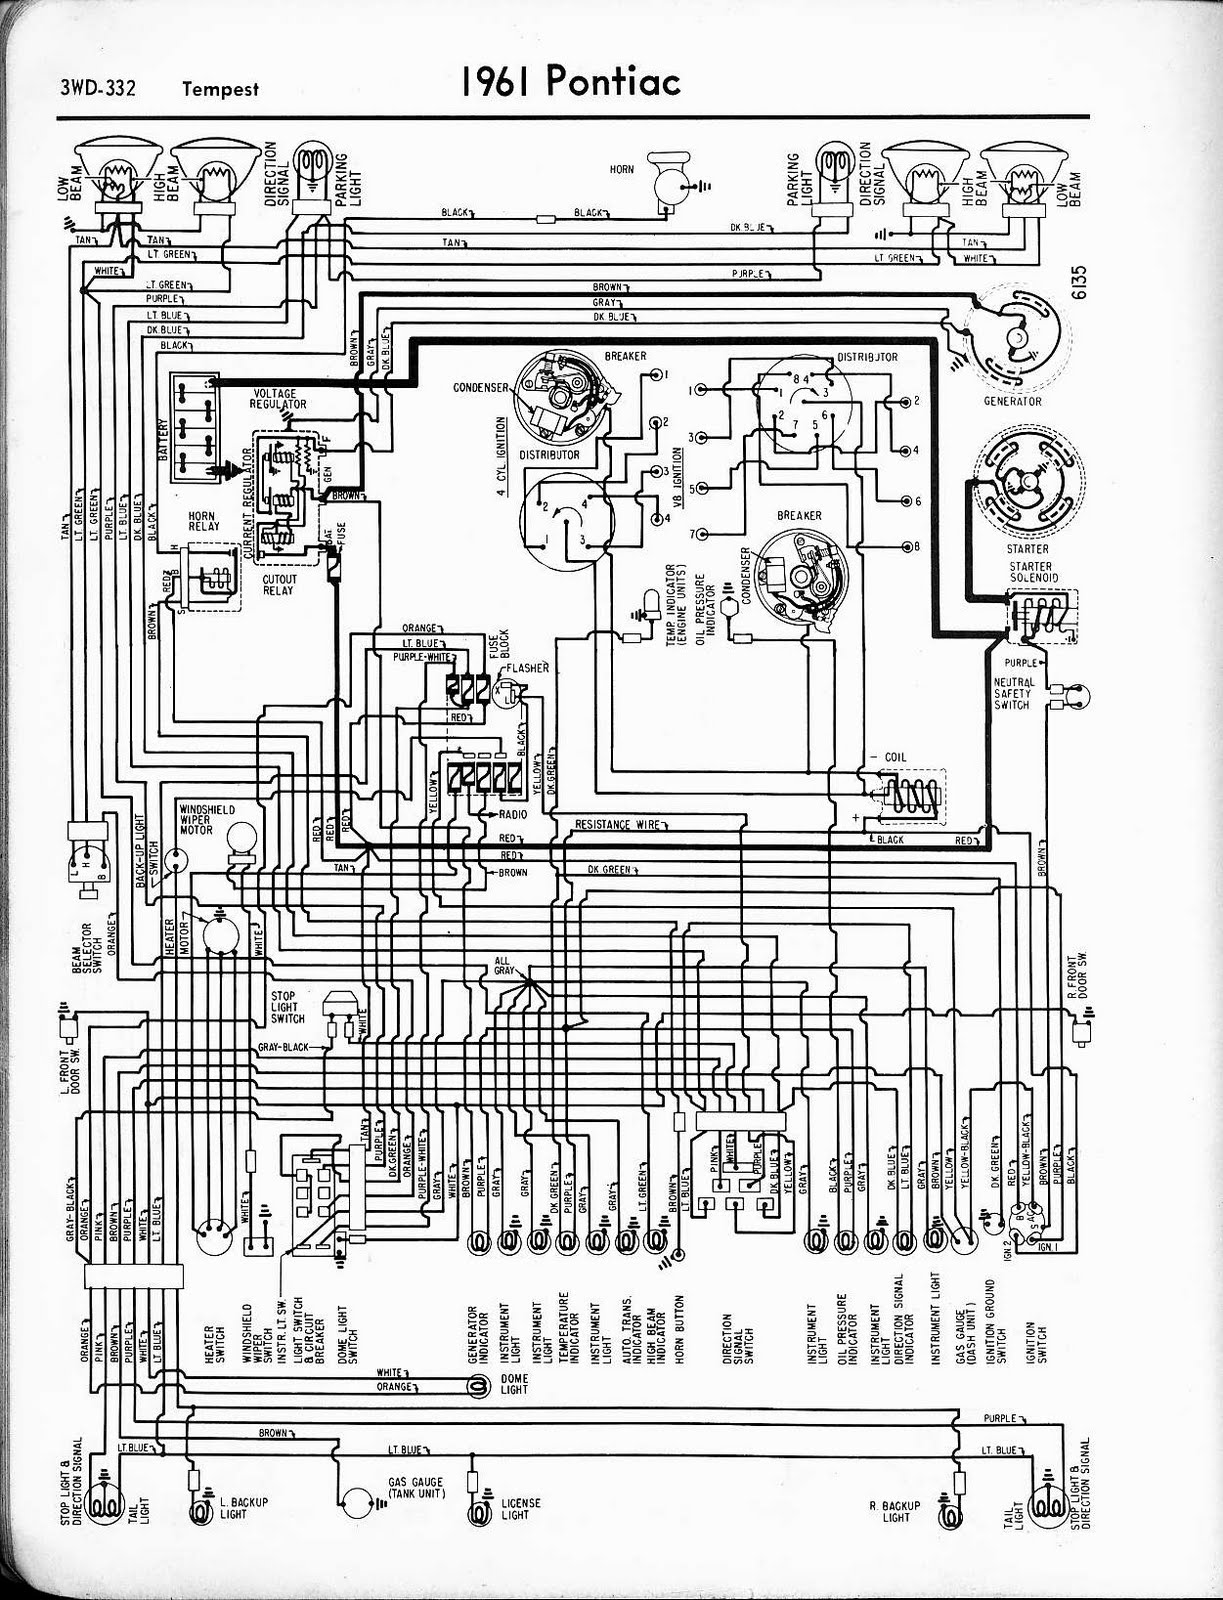 1969 Chevelle Tach Wiring Diagram, 1969, Free Engine Image